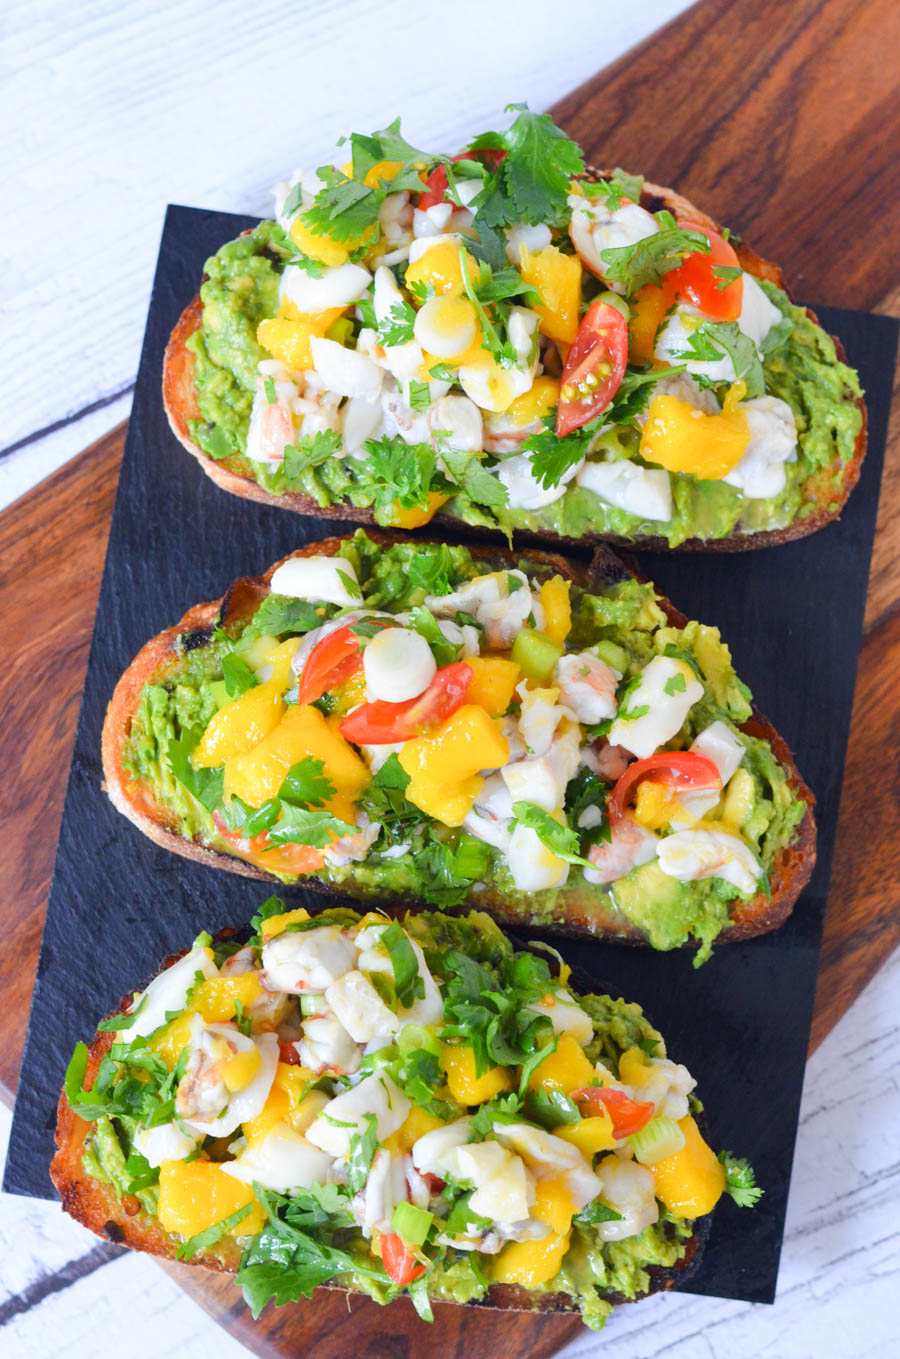 Ceviche Avocado Toast Recipe - No Cook Summer Brunch or Dinner Idea